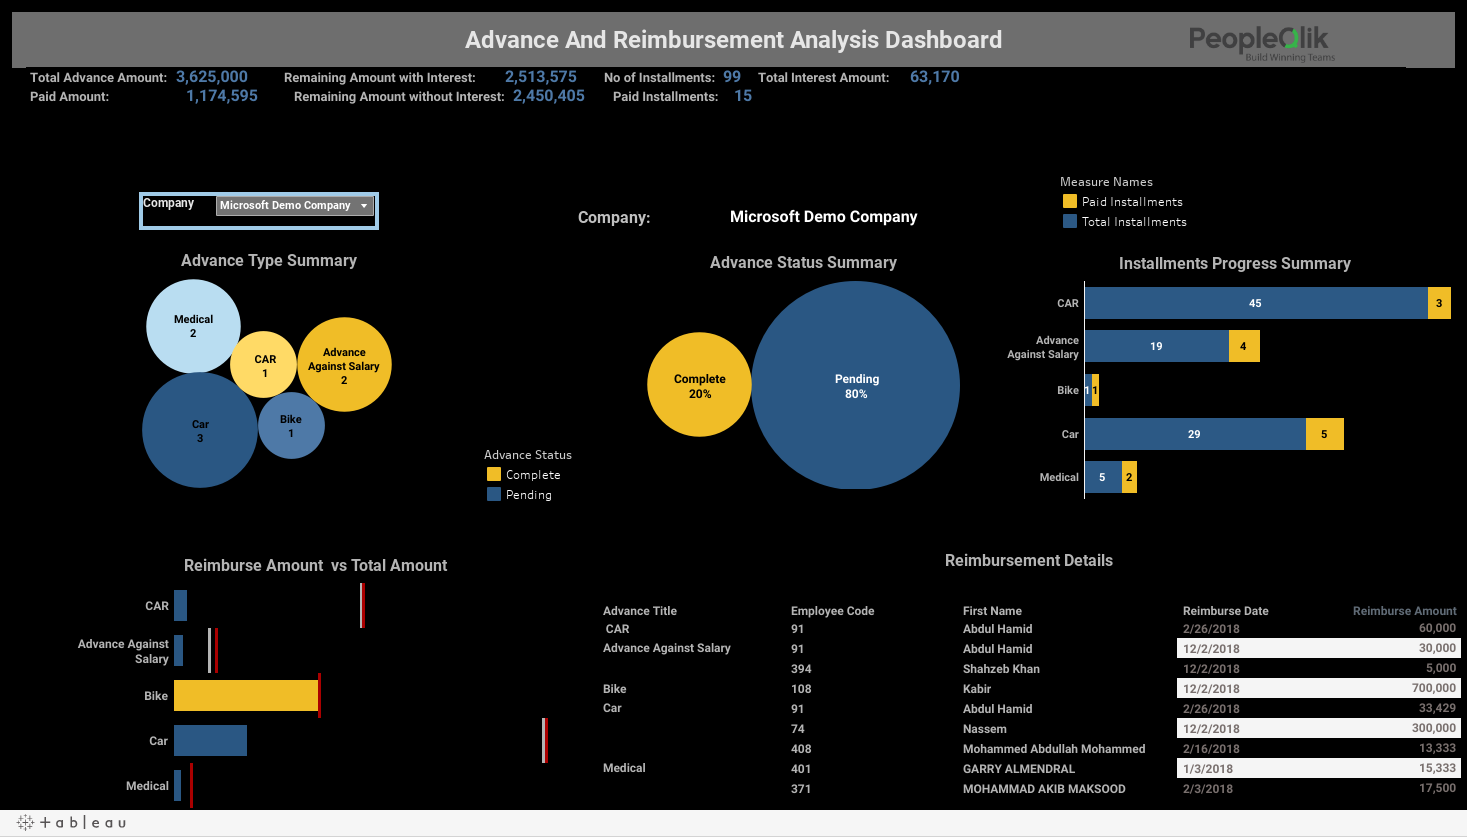 Advance And Reimbursement Analysis Dashboard